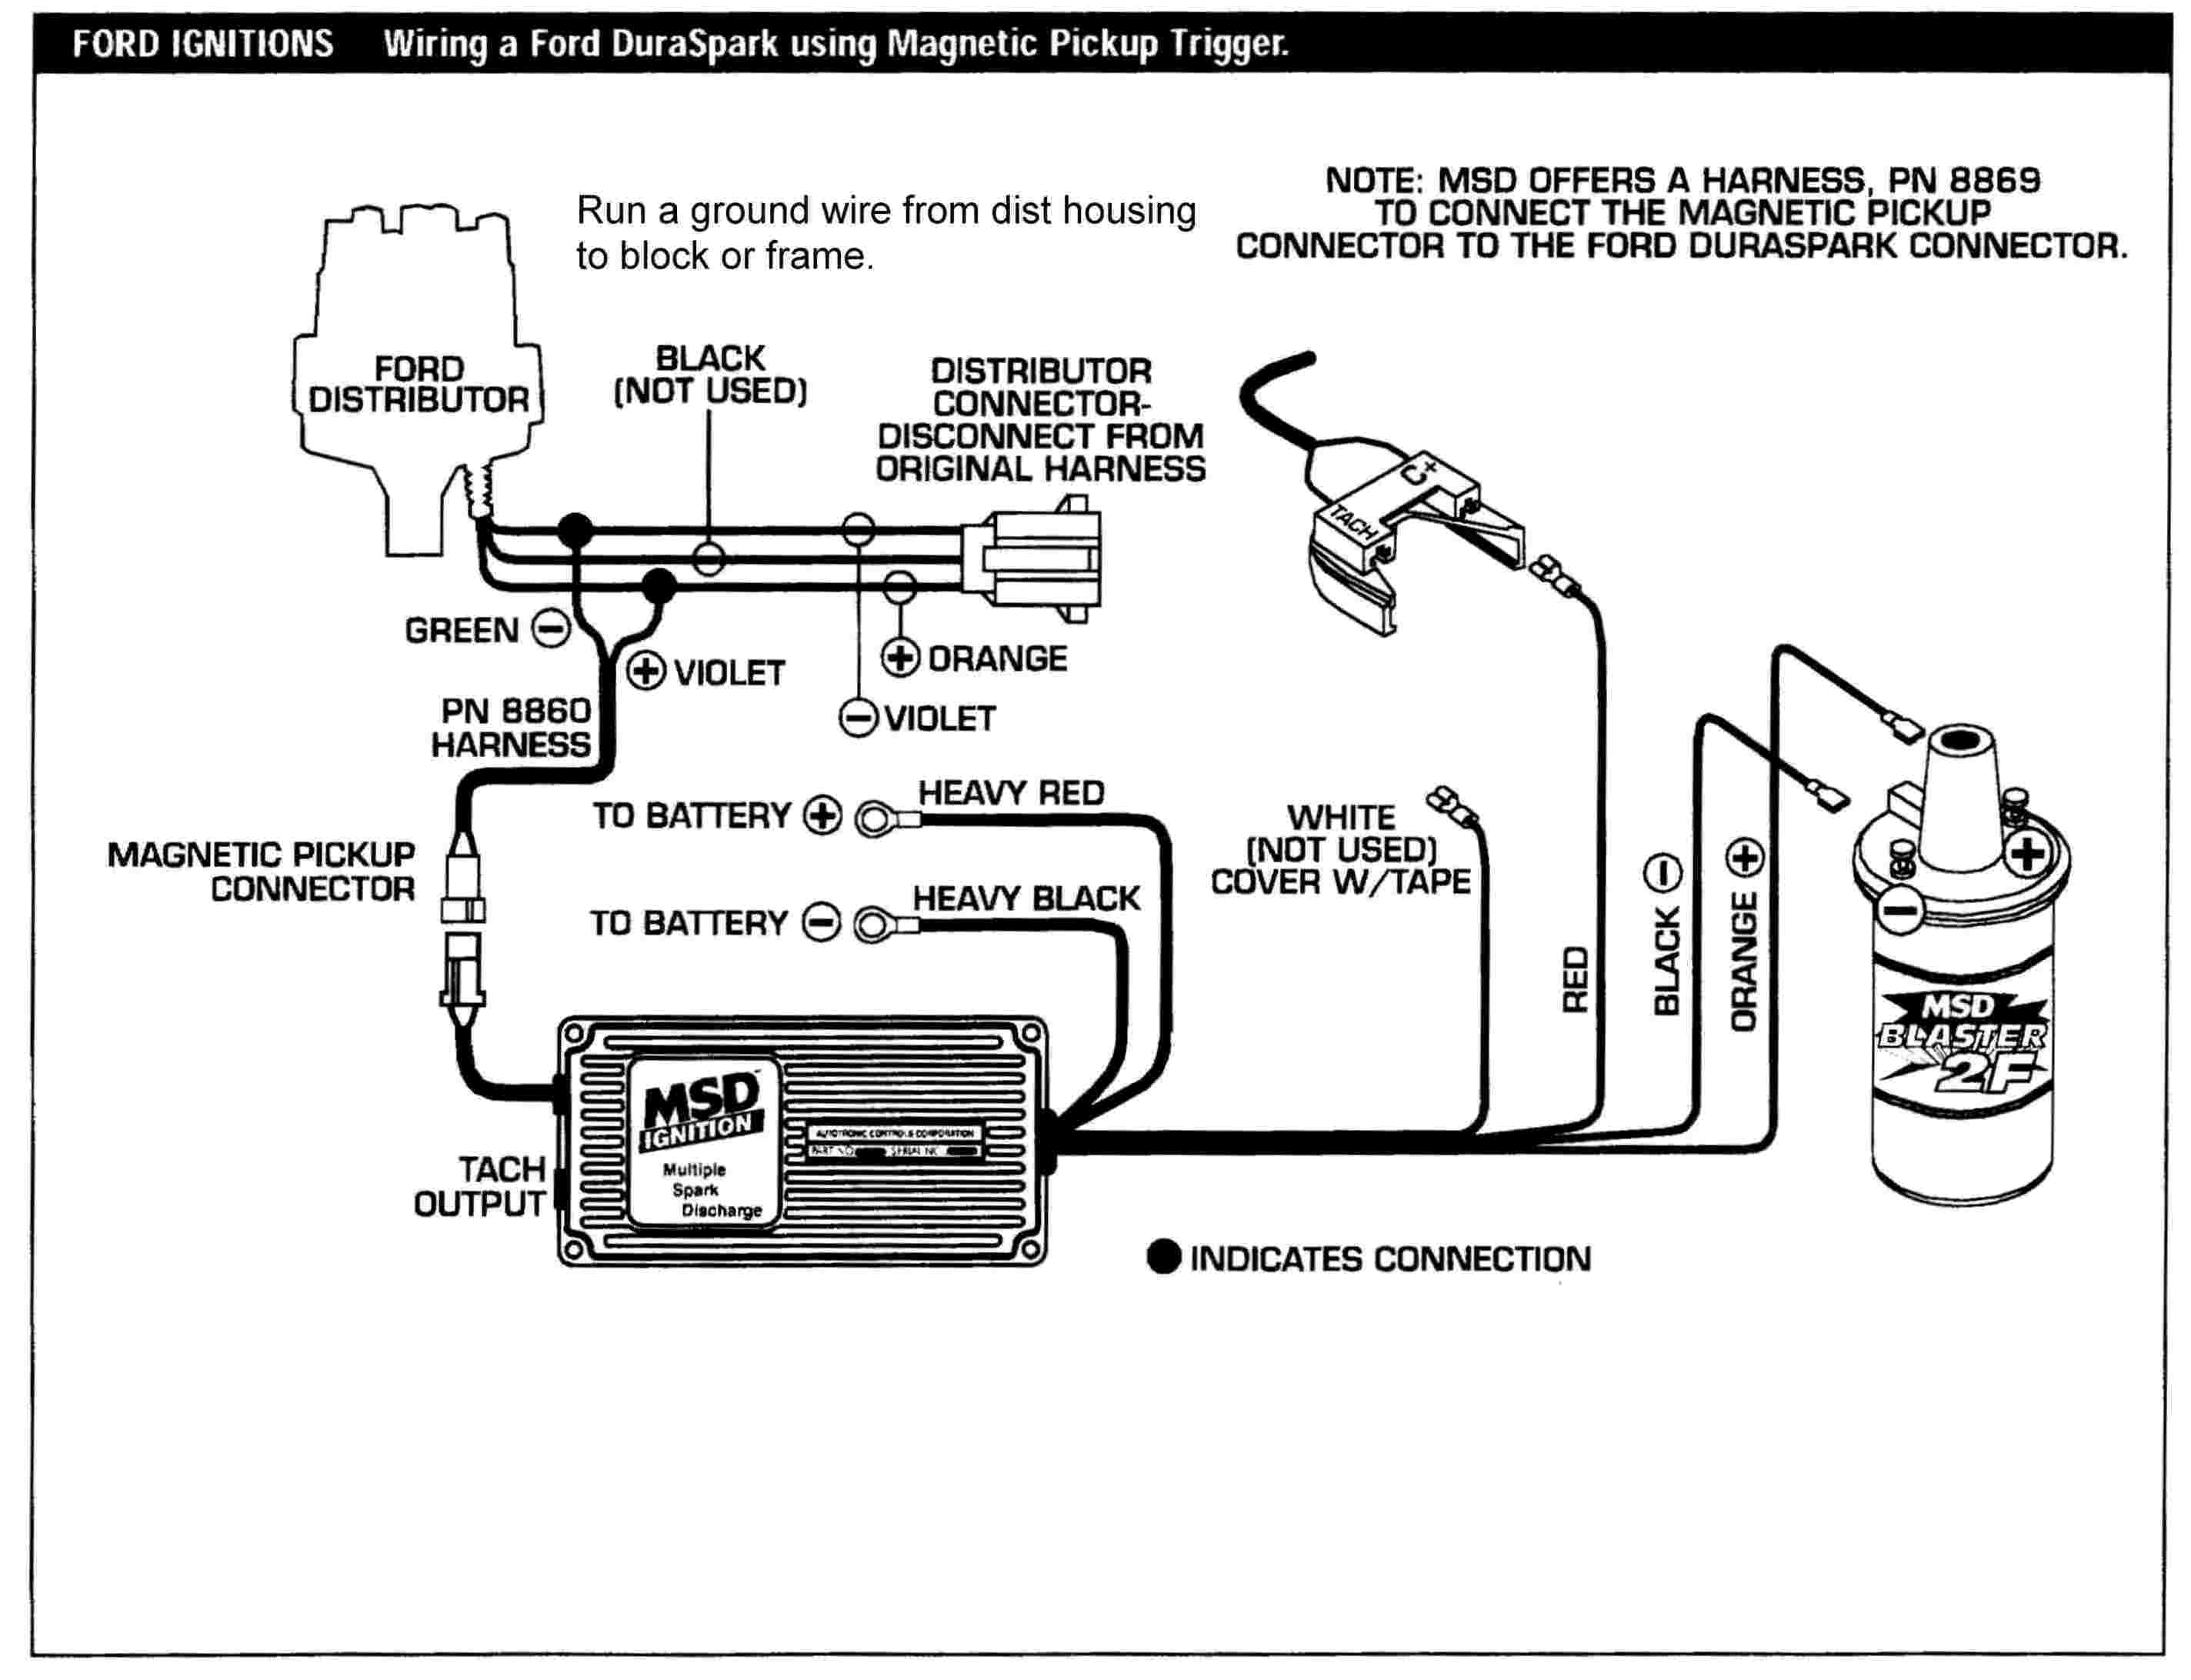 msd dis 4 wiring diagram msd 6 wiring diagram msd al wiring diagram chevy wiring diagram msd ignition wiring diagram a